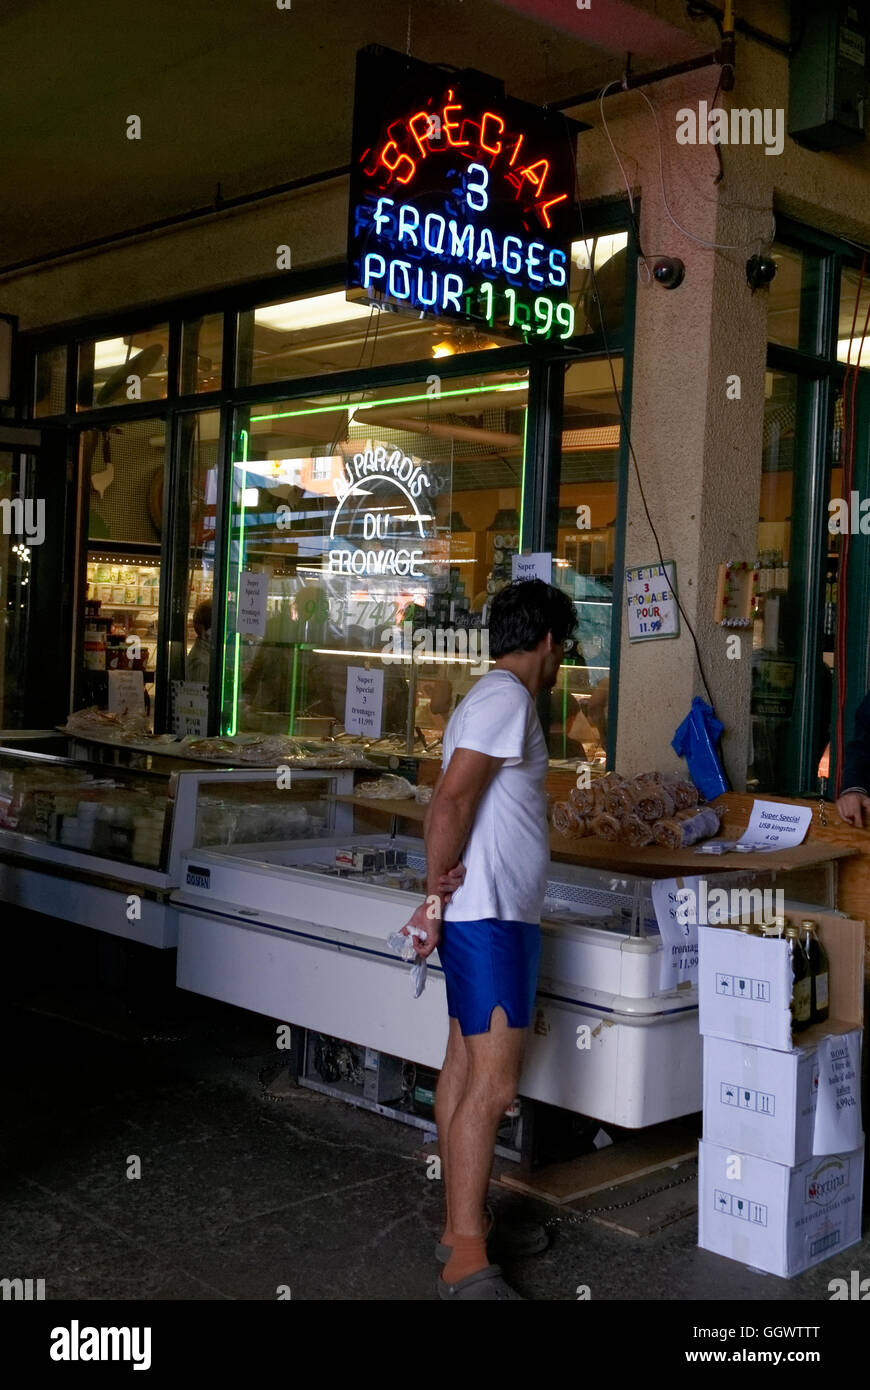 Man outside a cheese shop at the Atwater Market or Marché Atwater, Montreal, Quebec, Canada - Stock Image